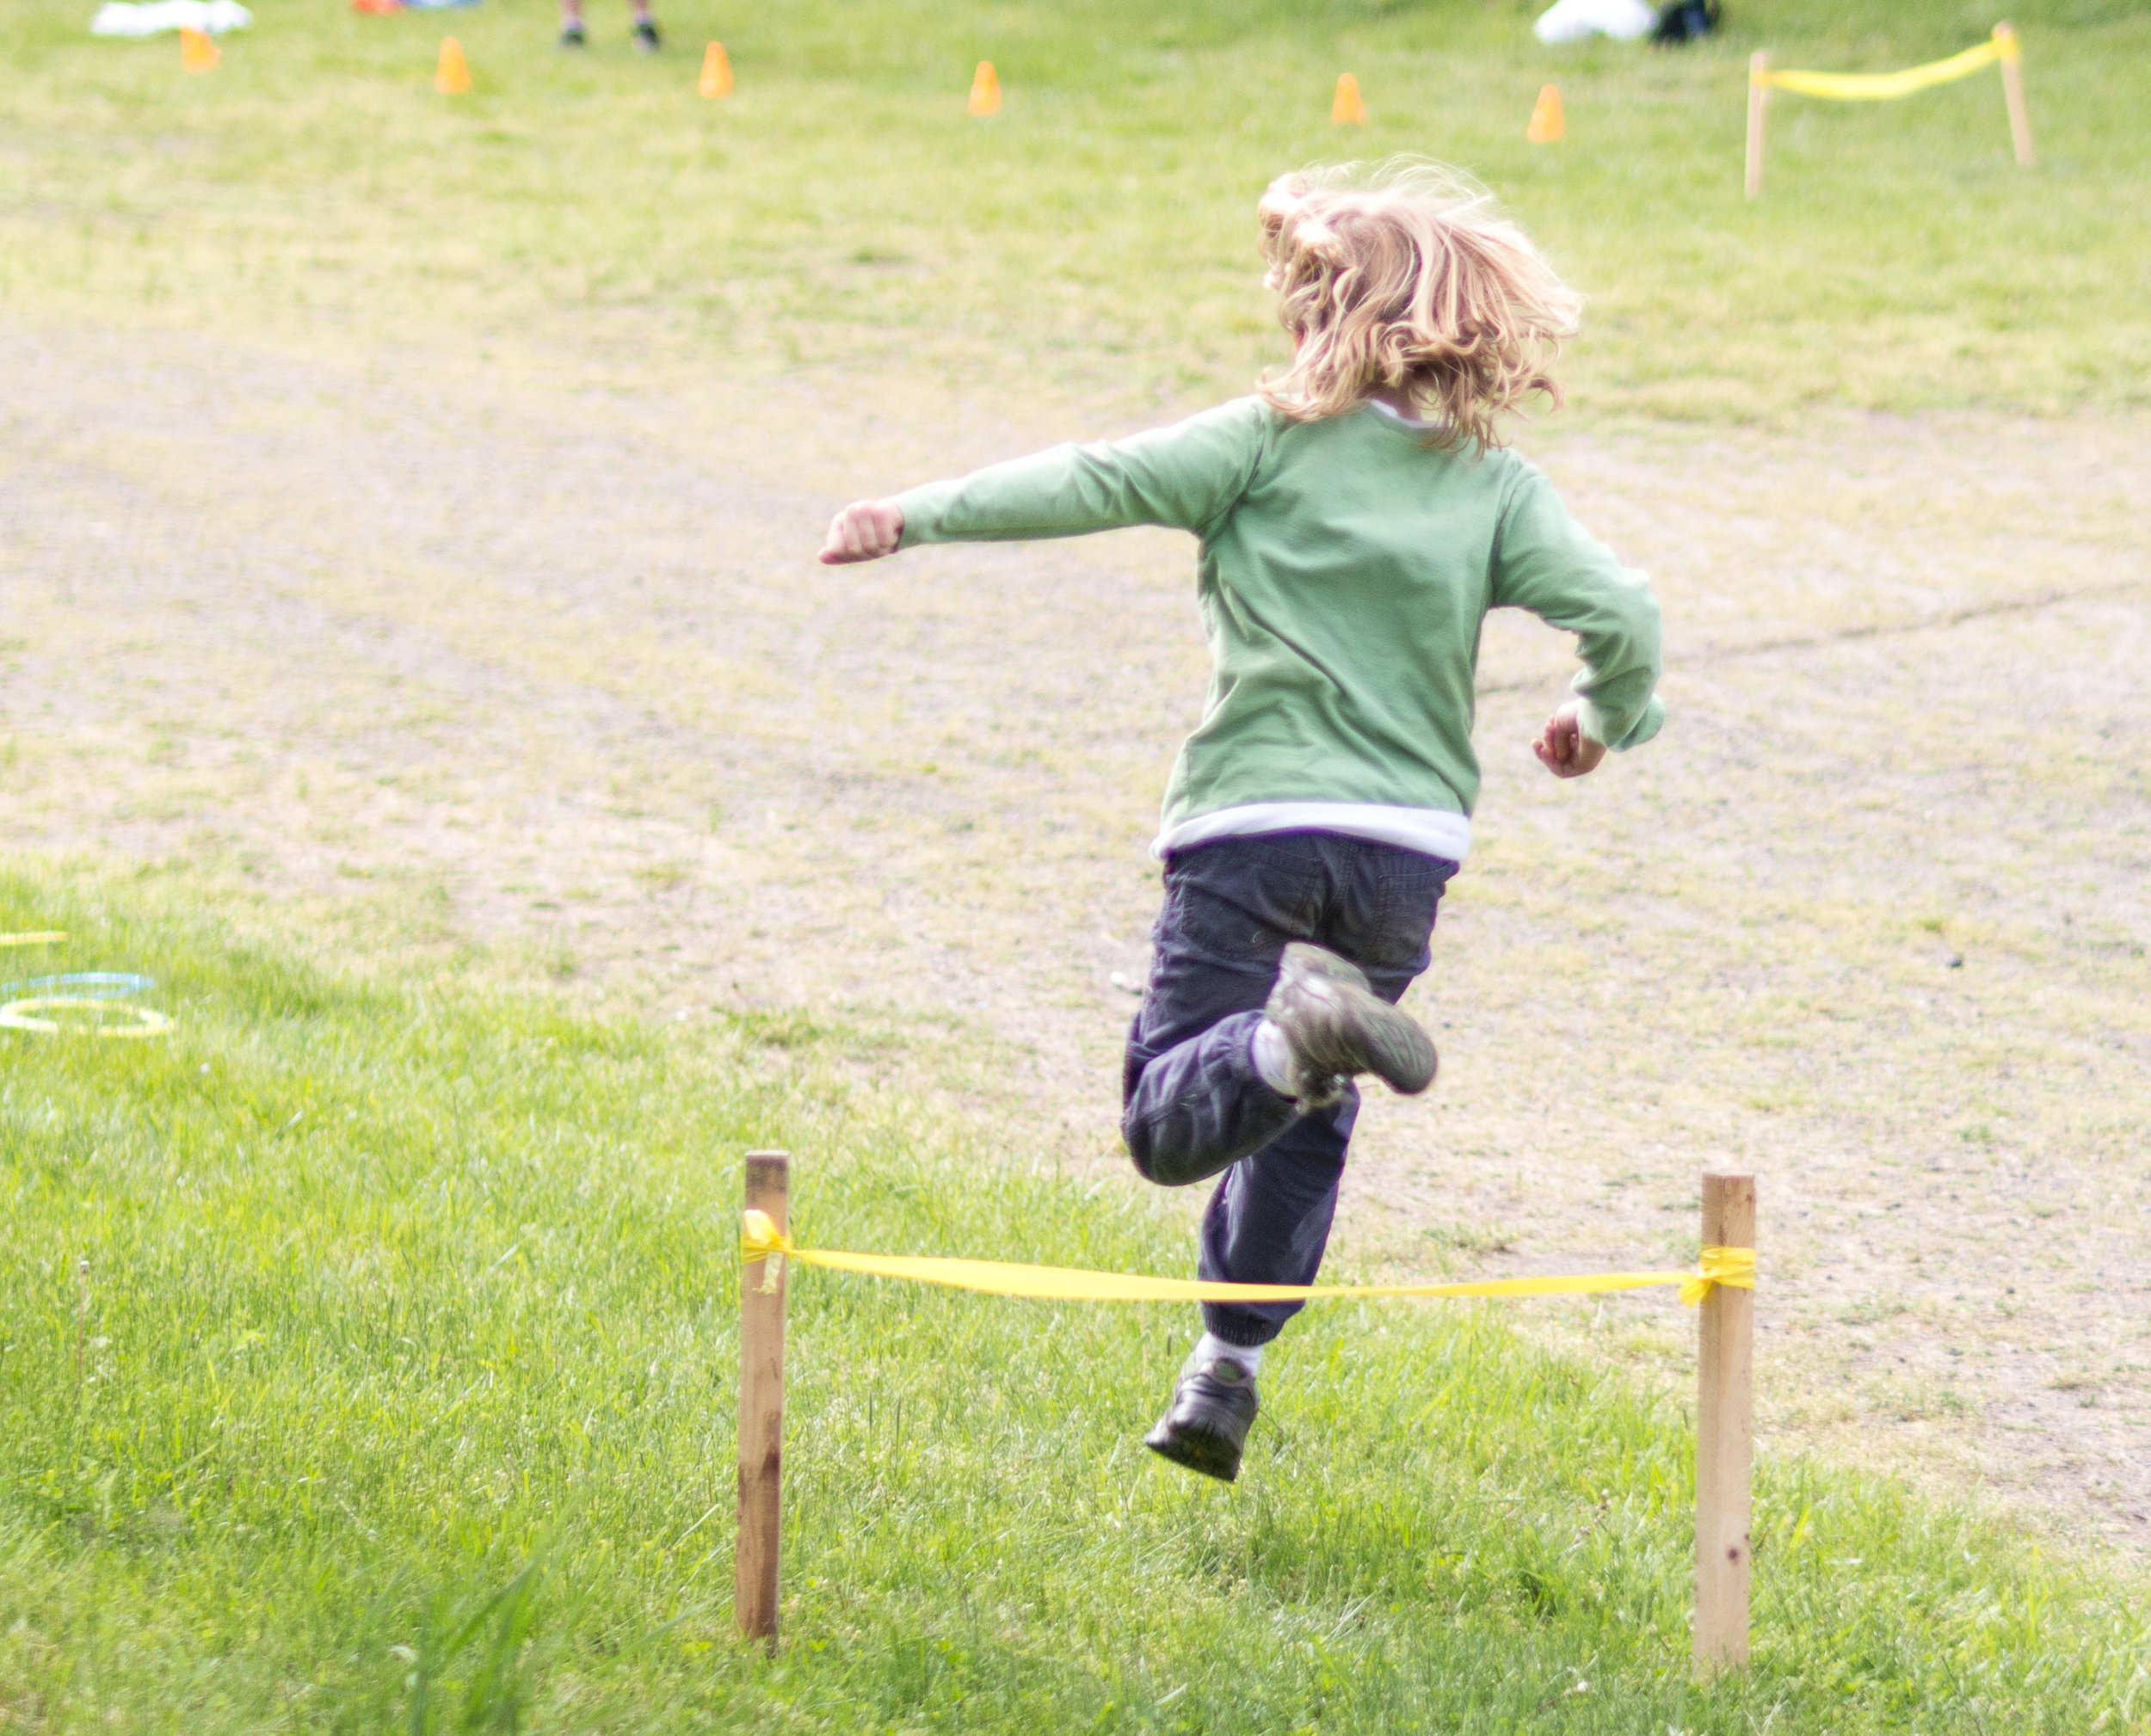 Cub Scouts Obstacle Course_10.jpg